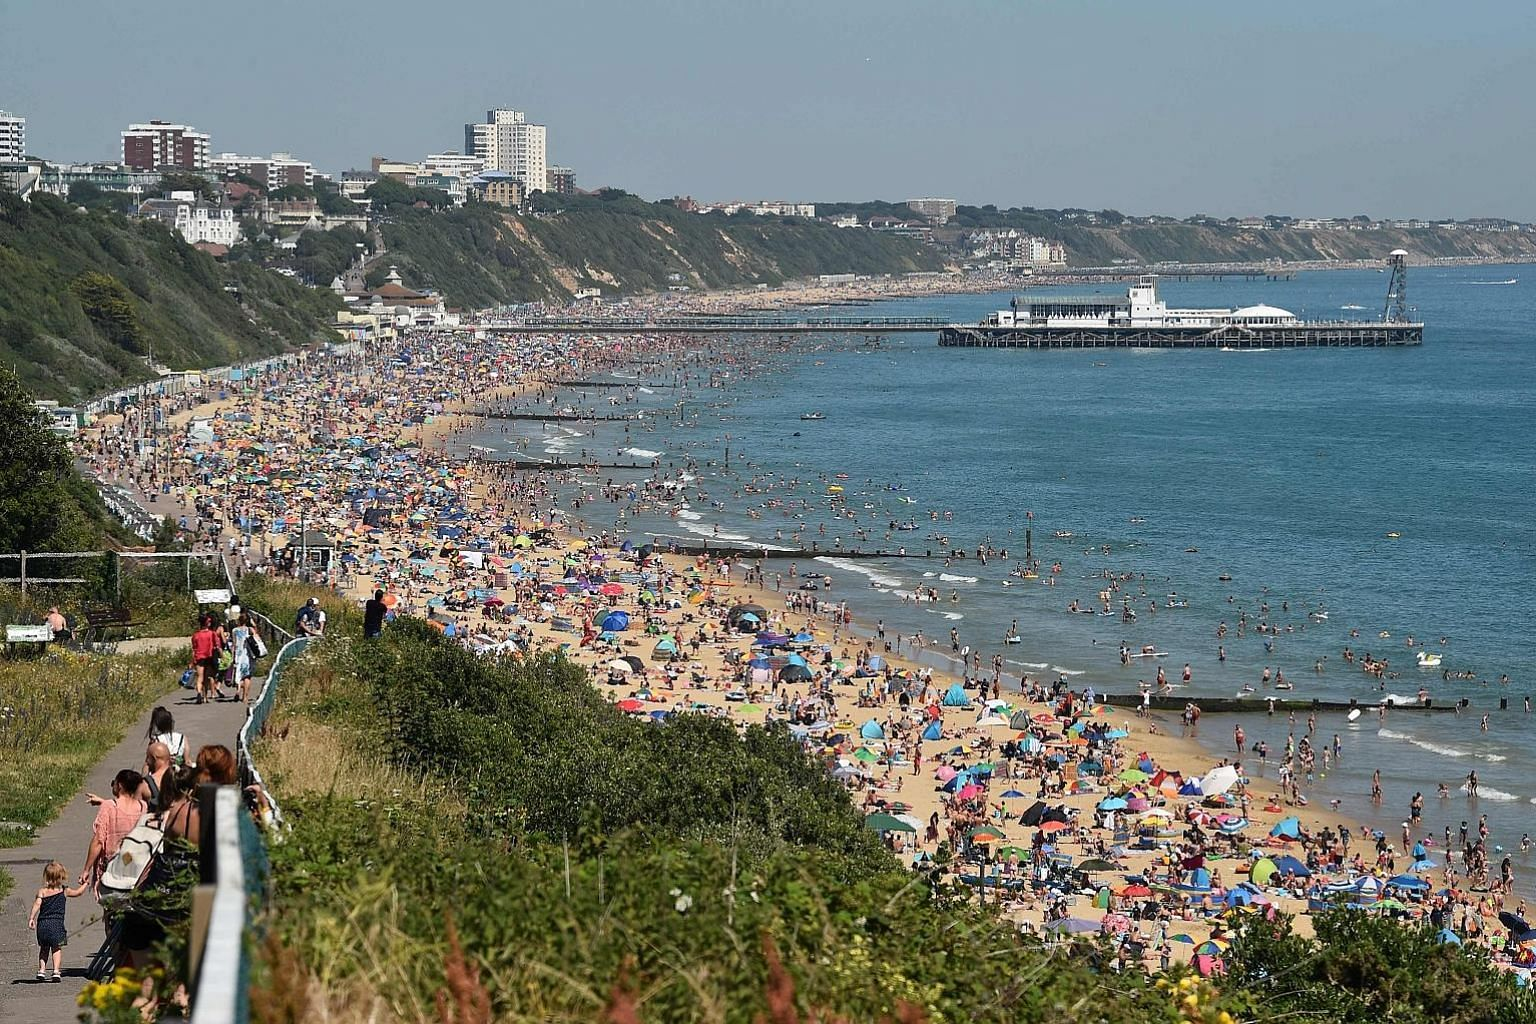 Beachgoers in Bournemouth on Thursday. With beaches packed, Britain's chief medical officer warned of the risk of infection.